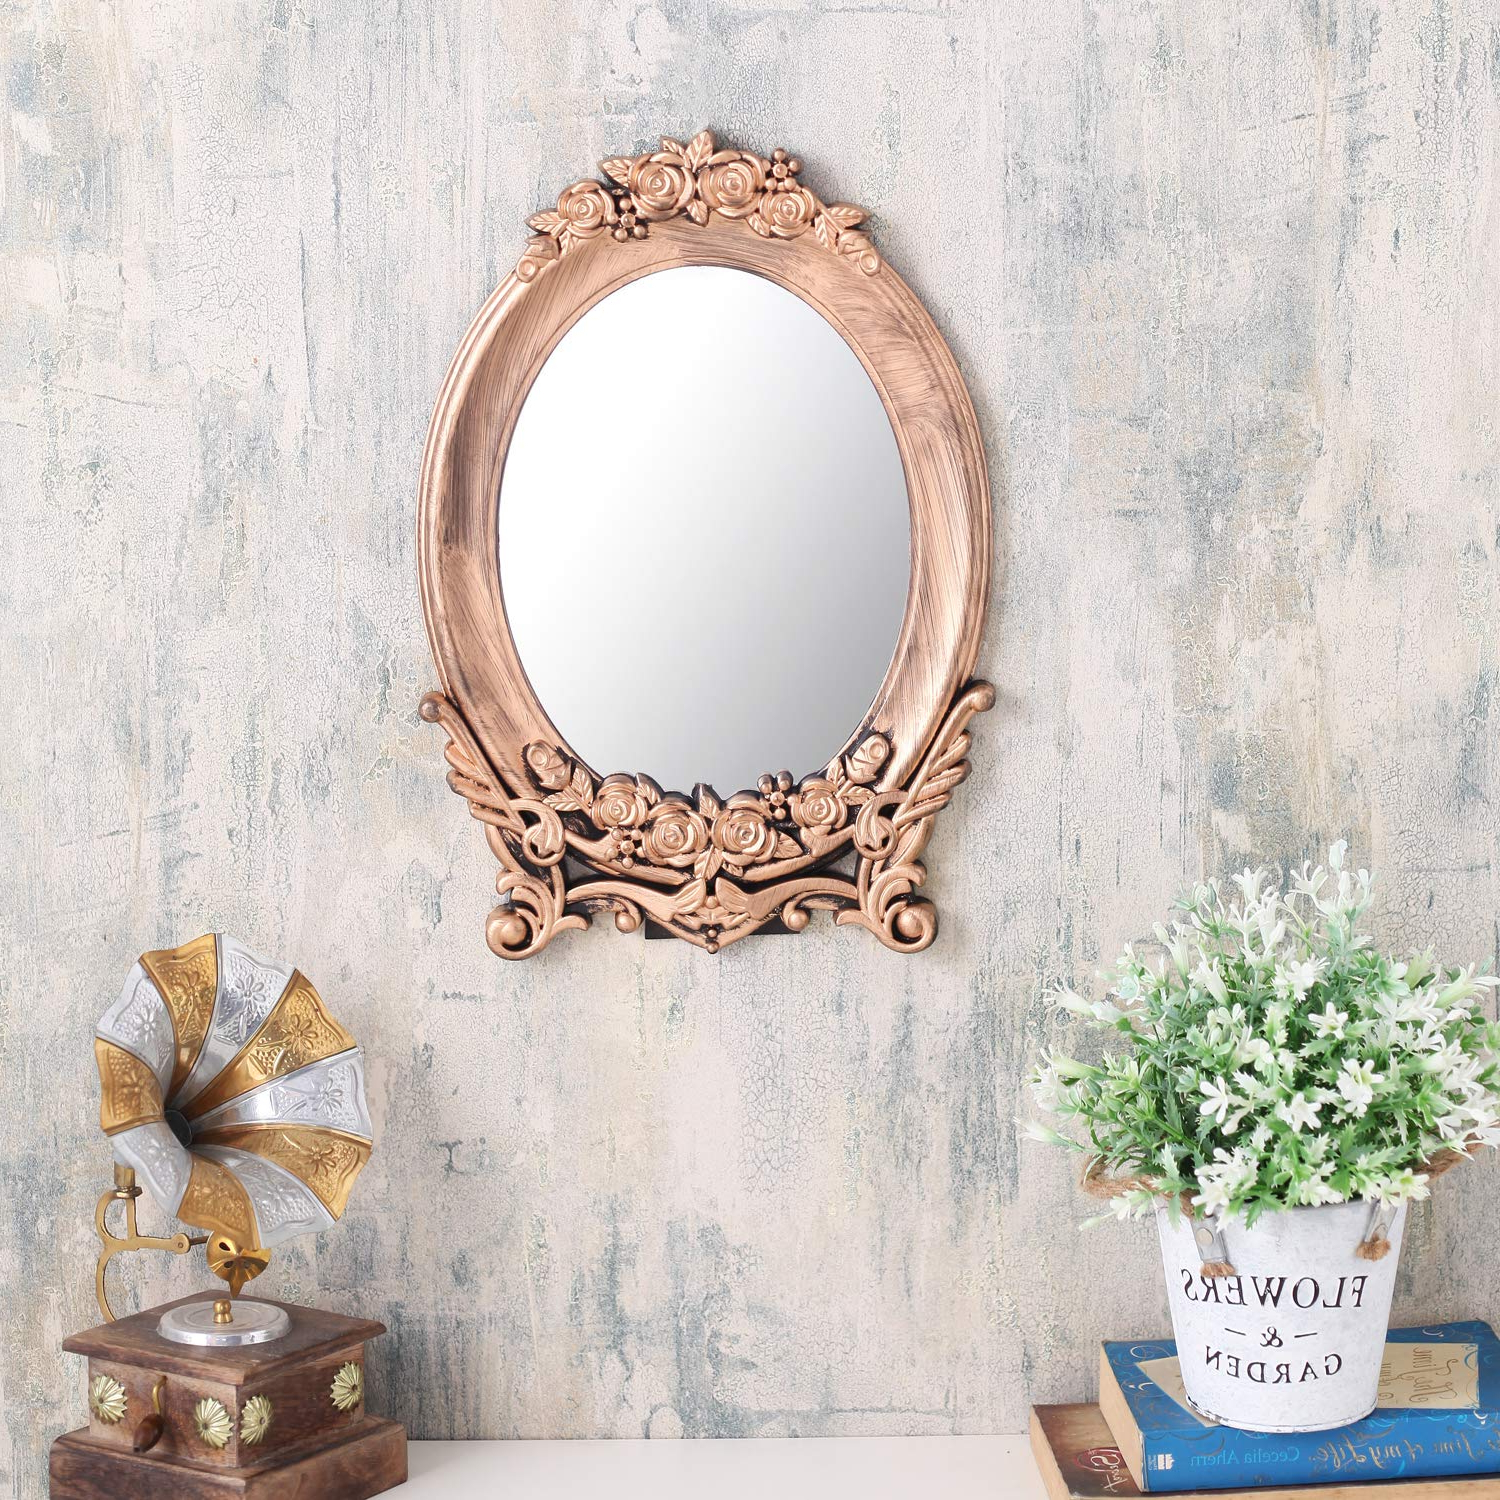 Current Small Antique Wall Mirrors With Regard To A Vintage Affair Decorative Wall Mirror Antique Hanging Design Small Size  Oval For Bedroom Bathroom Living Room Office Copper (Gallery 7 of 20)